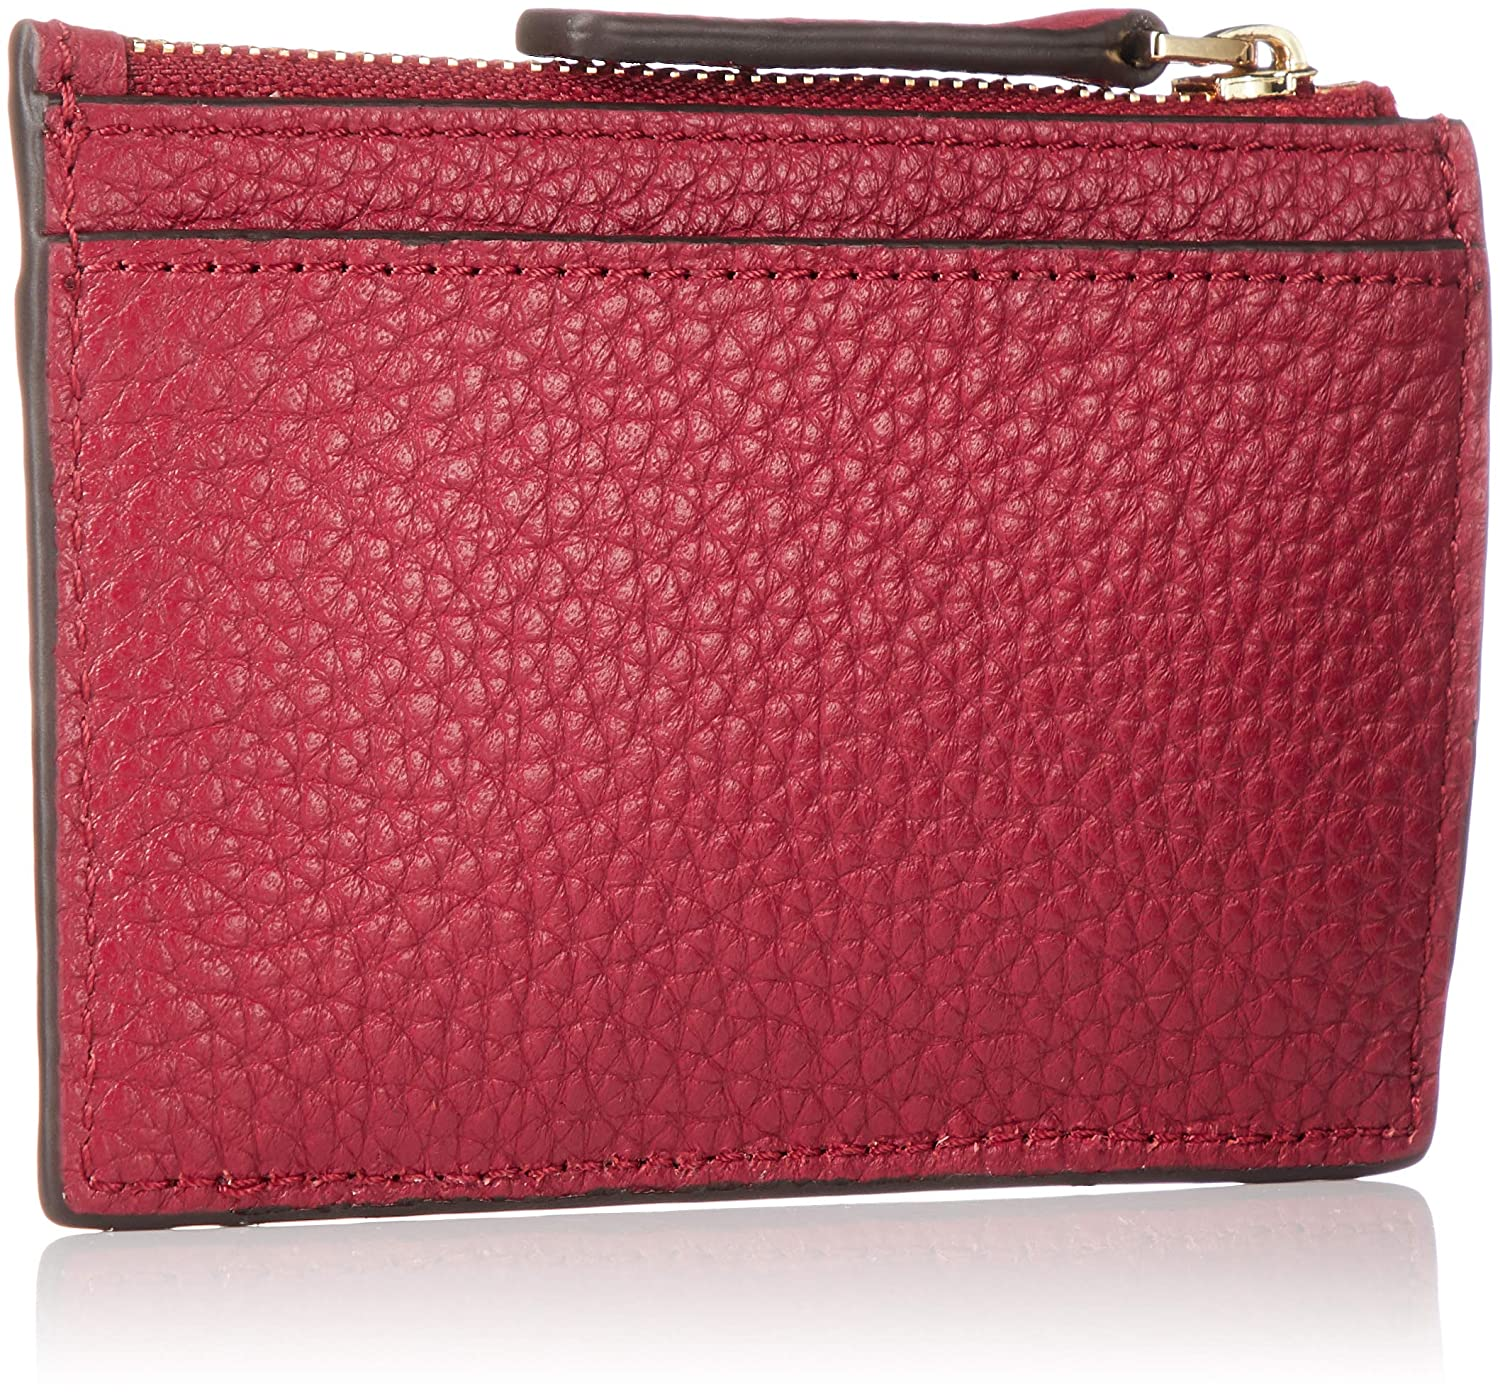 finest selection bde9a f2945 Amazon.com: TUMI - Belden Zip Card Case - Orchid: Clothing